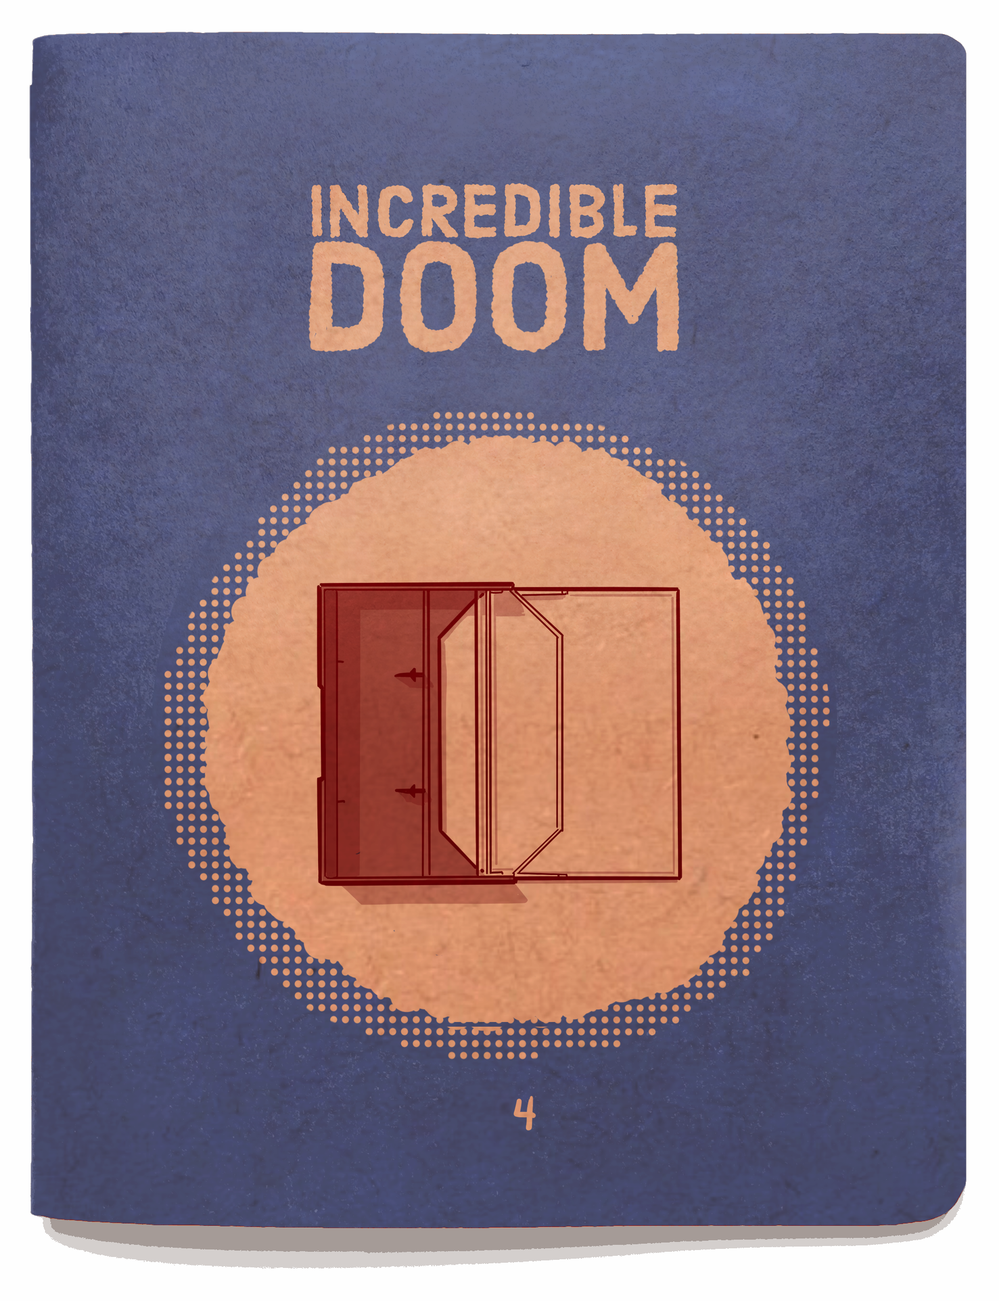 Incredible Doom #4 Cover With Shaddow Template.png